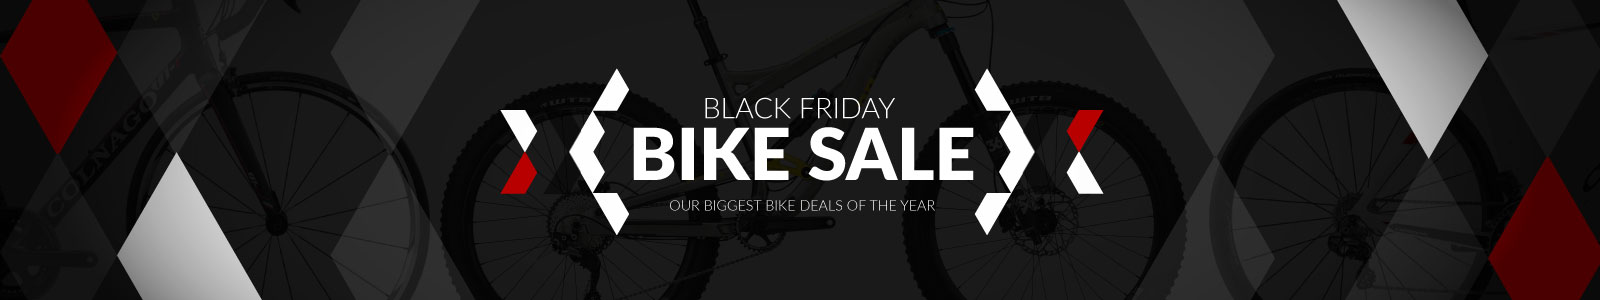 Black Friday Bike Sale